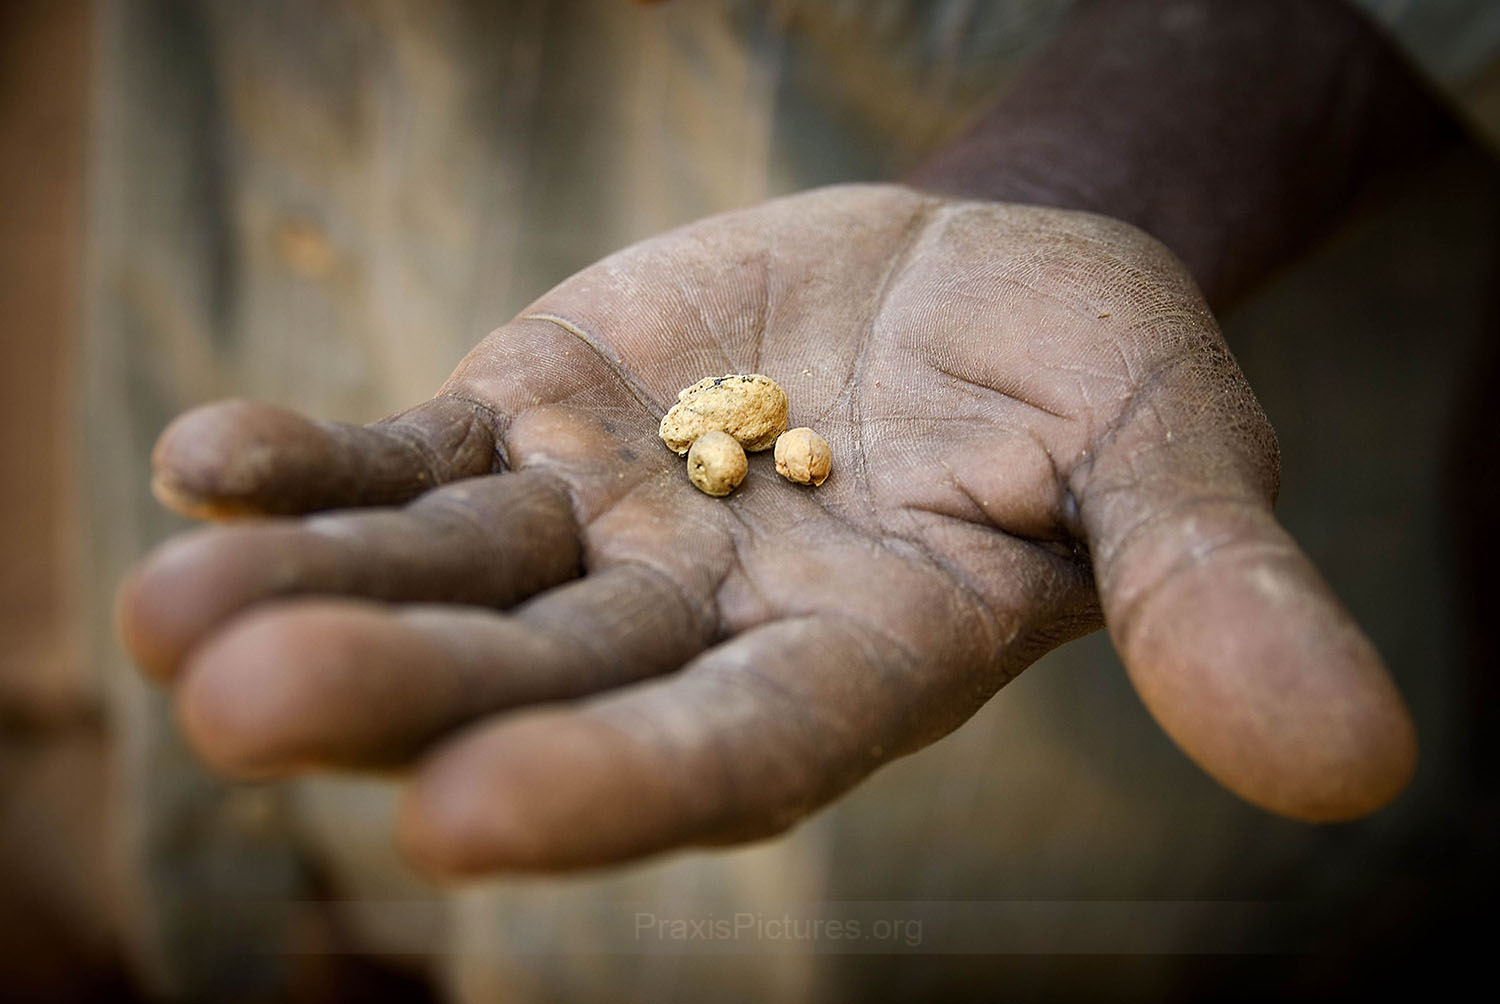 THE PRICE OF GOLD - An artisanal miner in Tanzania holds out some gold nuggets. The price of gold has been skyrocketing, reaching record high prices in recent years. Multinational mining companies search the ends of the earth for these, and other, valued natural resources. Meanwhile, the people who just happen to live there are the ones who usually end up paying the price. For minerals that mean little to them, for profits they never see, the price they pay includes the very things that they treasure most – including the loss of traditional lands, livelihoods, health, culture, and loved ones.